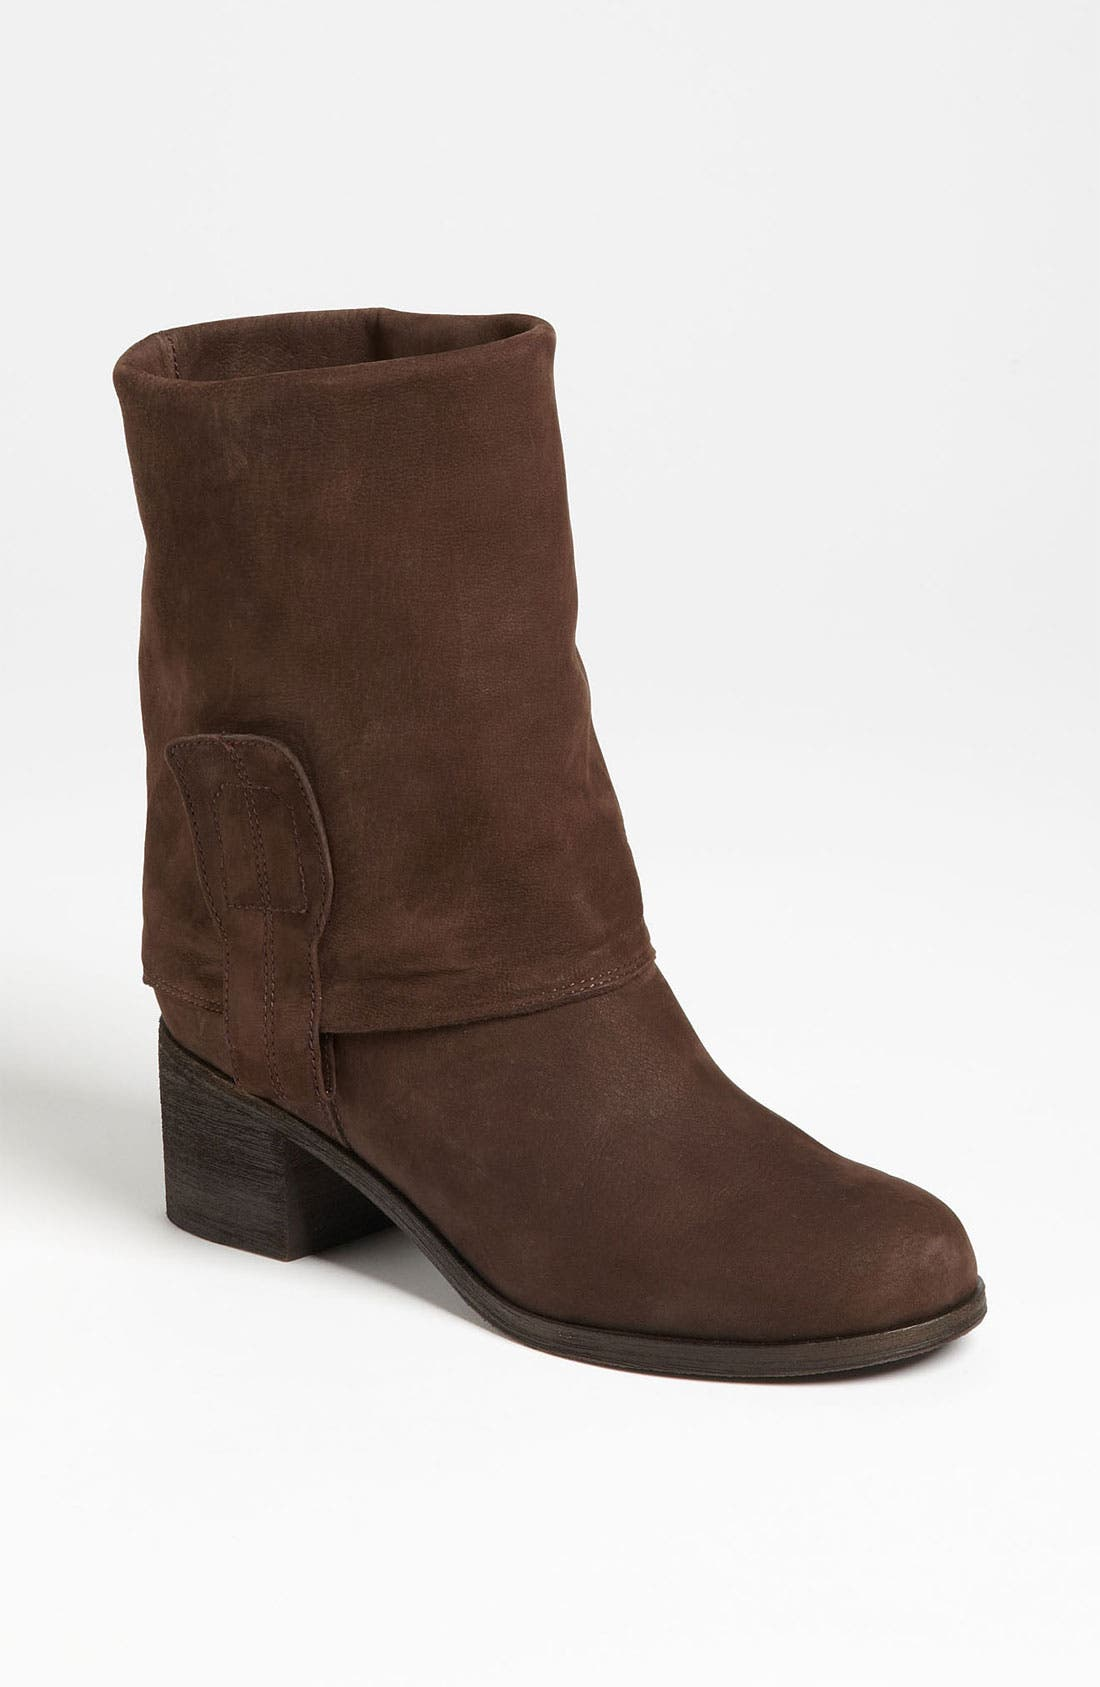 Alternate Image 1 Selected - Eileen Fisher 'Hint' Boot